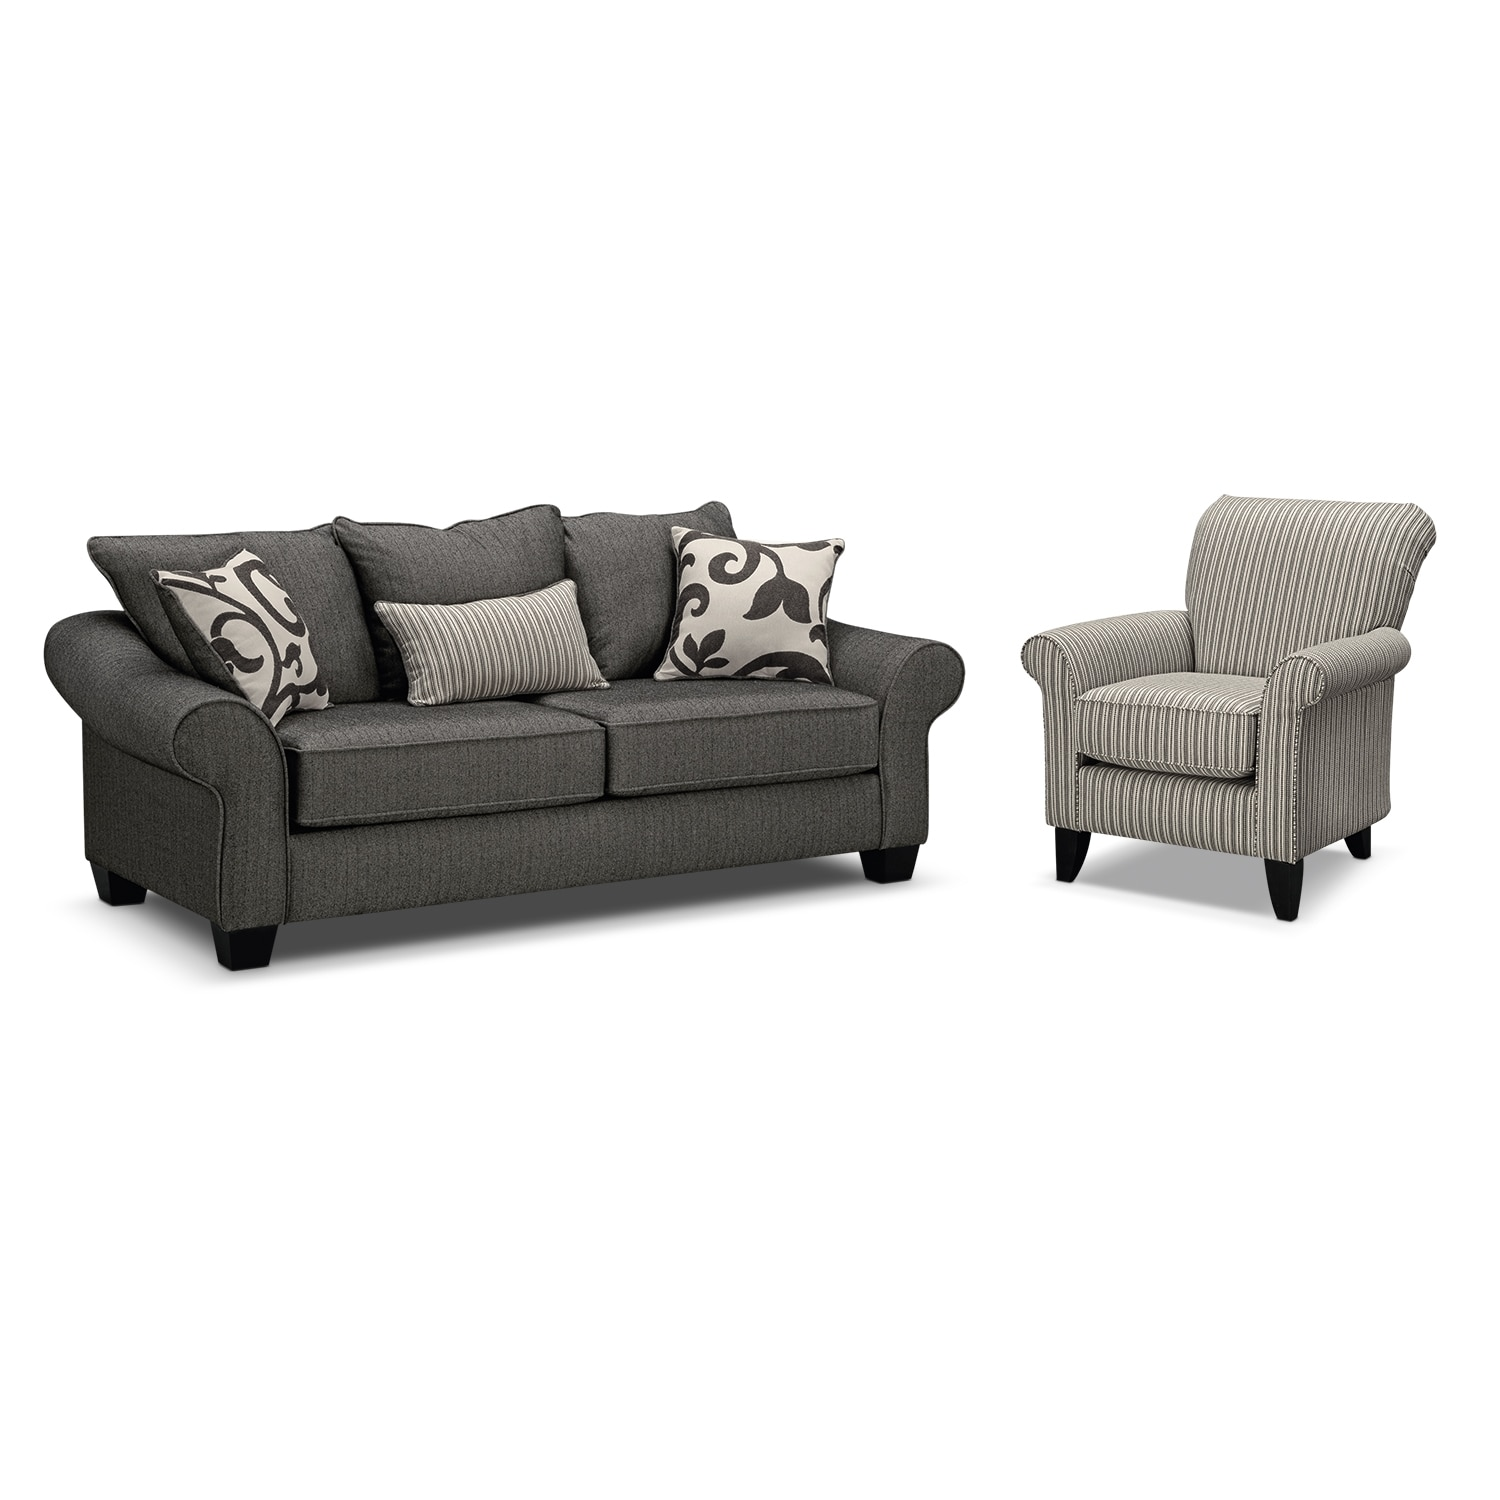 Good Colette Sofa And Accent Chair Set   Gray By Kroehler